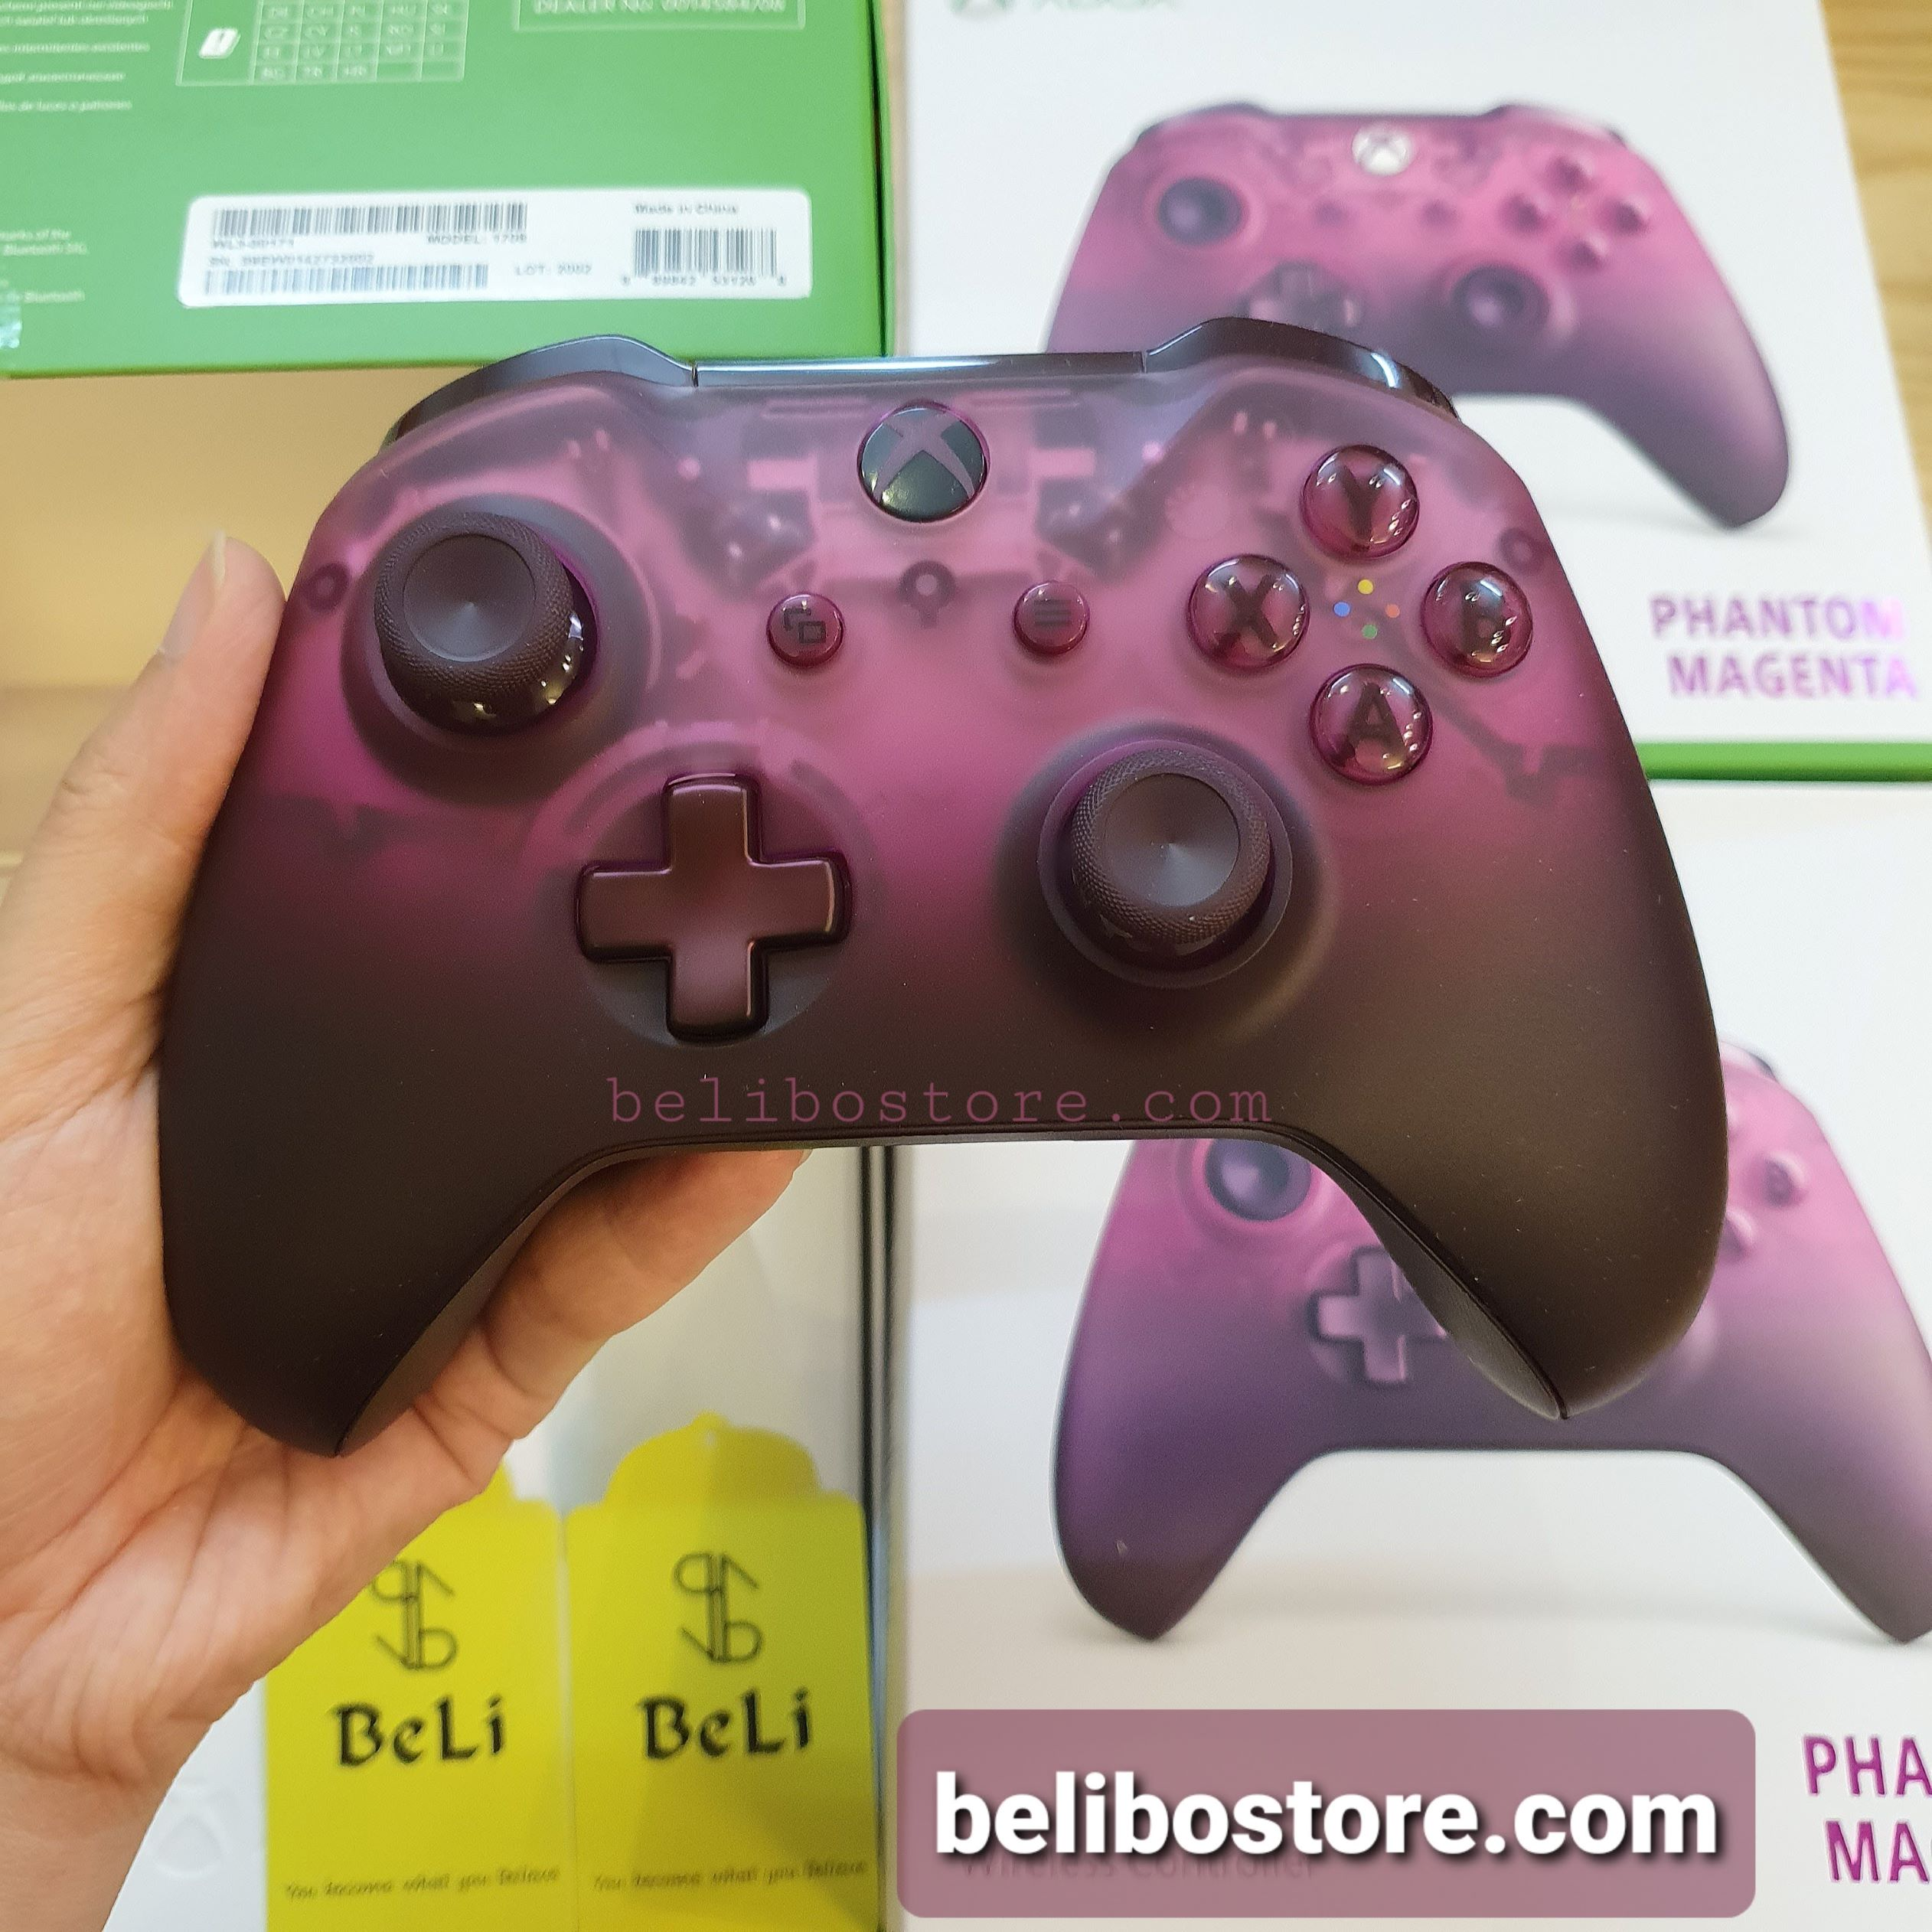 ba-n-gio-i-ha-n-tay-cam-xbox-one-s-ba-n-ma-u-da-c-bie-t-limited-chinh-hang